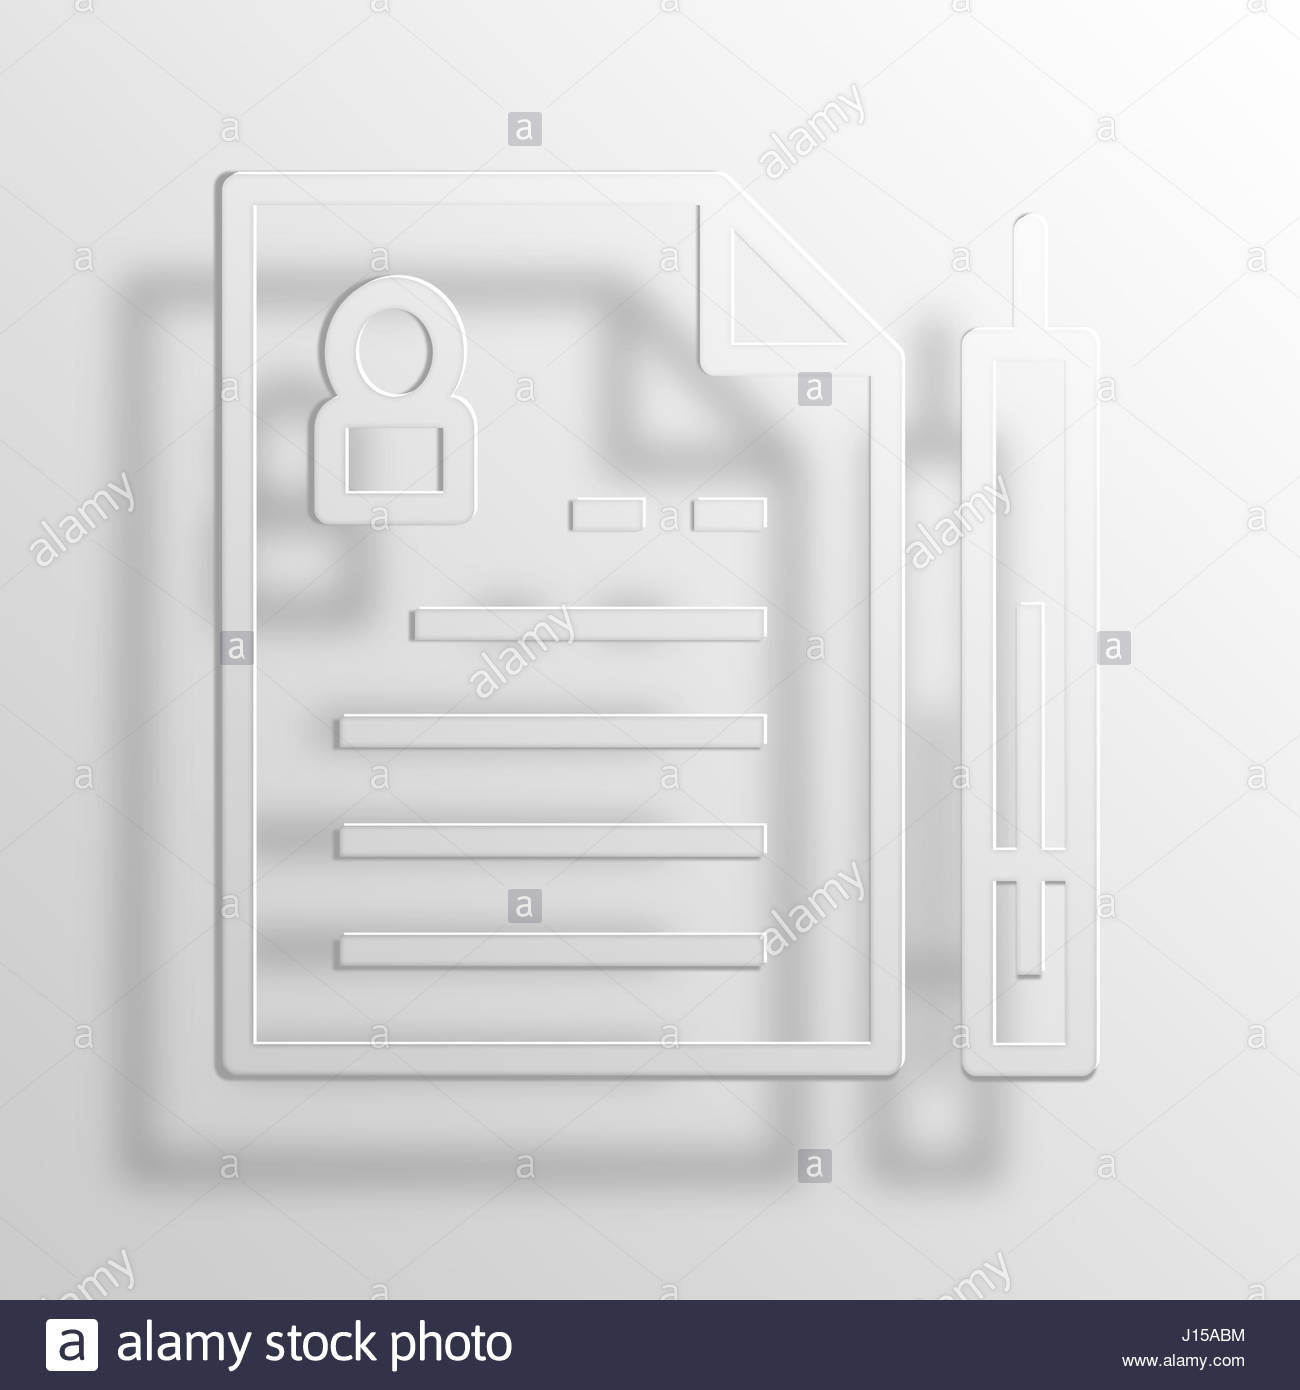 resume 3d paper icon symbol business concept no 1494 stock photo